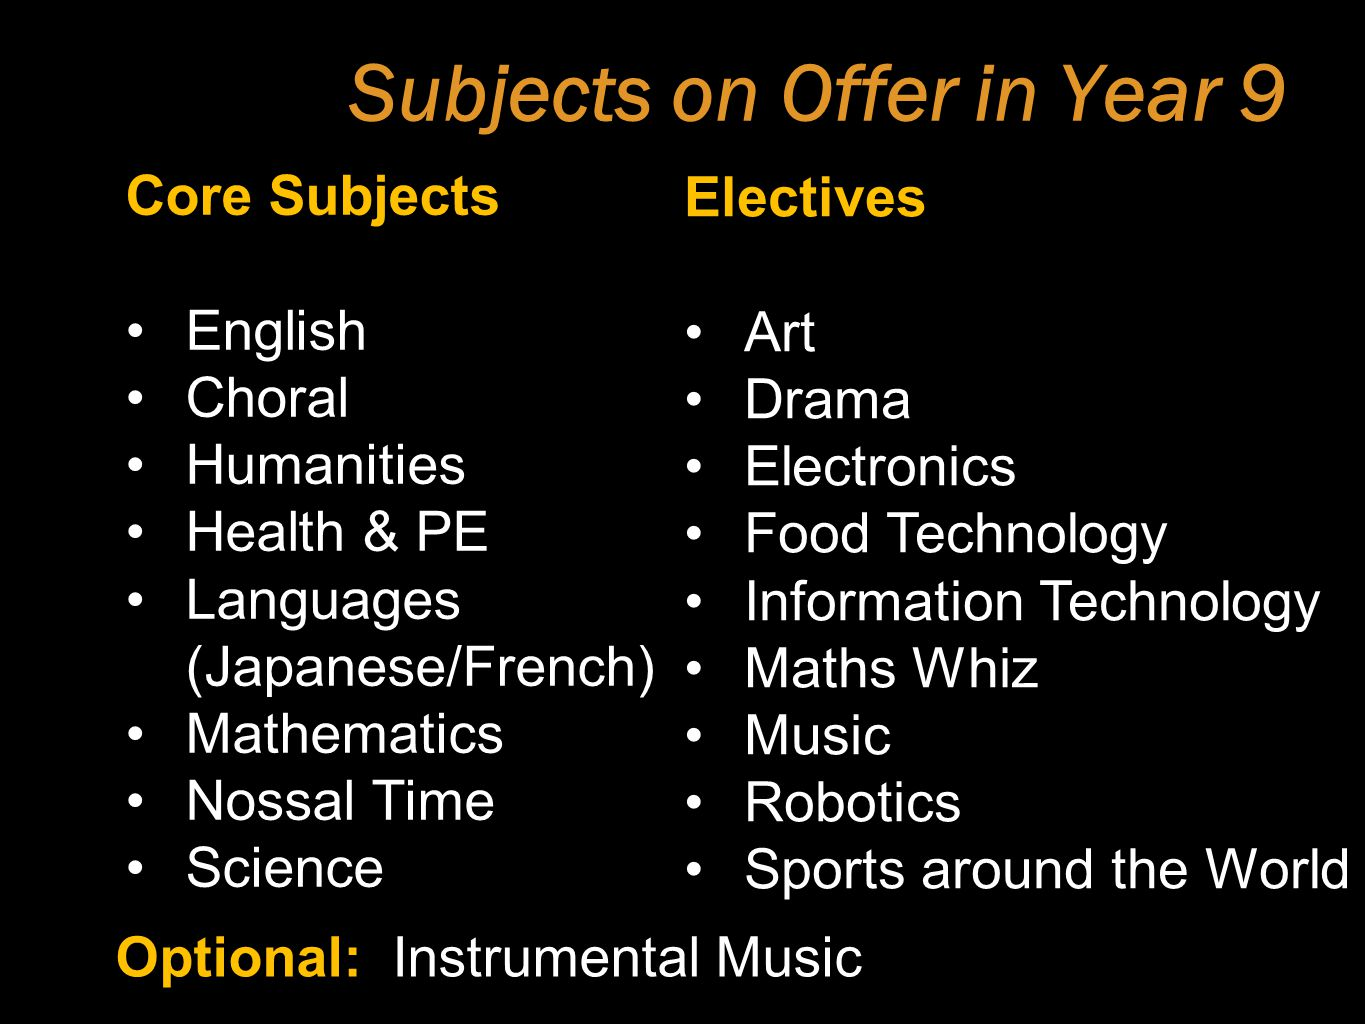 Subjects on Offer in Year 9 Core Subjects English Choral Humanities Health & PE Languages (Japanese/French) Mathematics Nossal Time Science Electives Art Drama Electronics Food Technology Information Technology Maths Whiz Music Robotics Sports around the World Optional: Instrumental Music